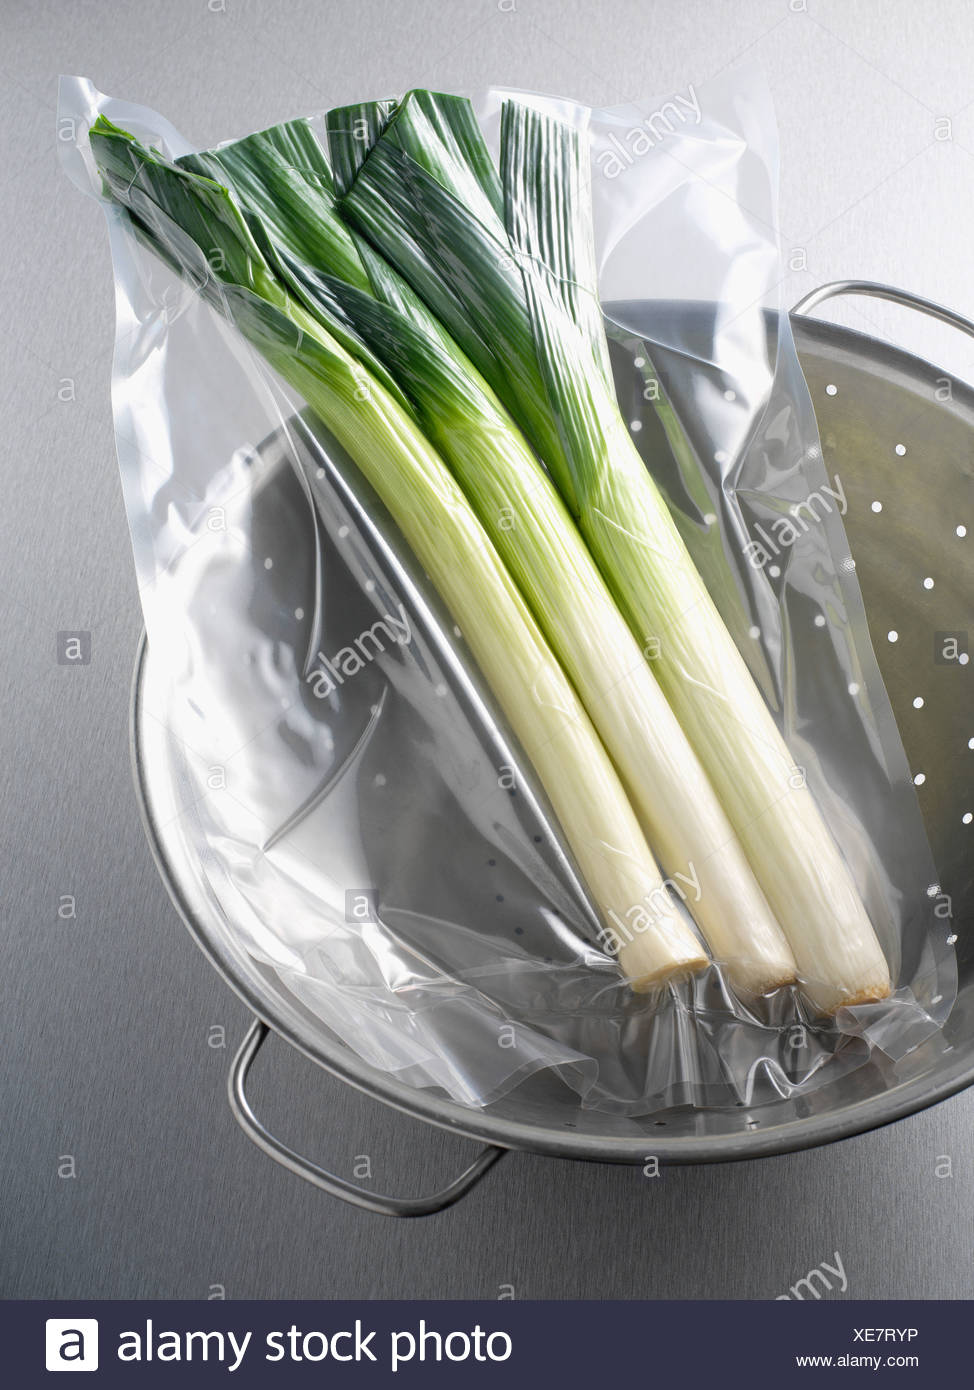 Vacuum packed leeks - Stock Image